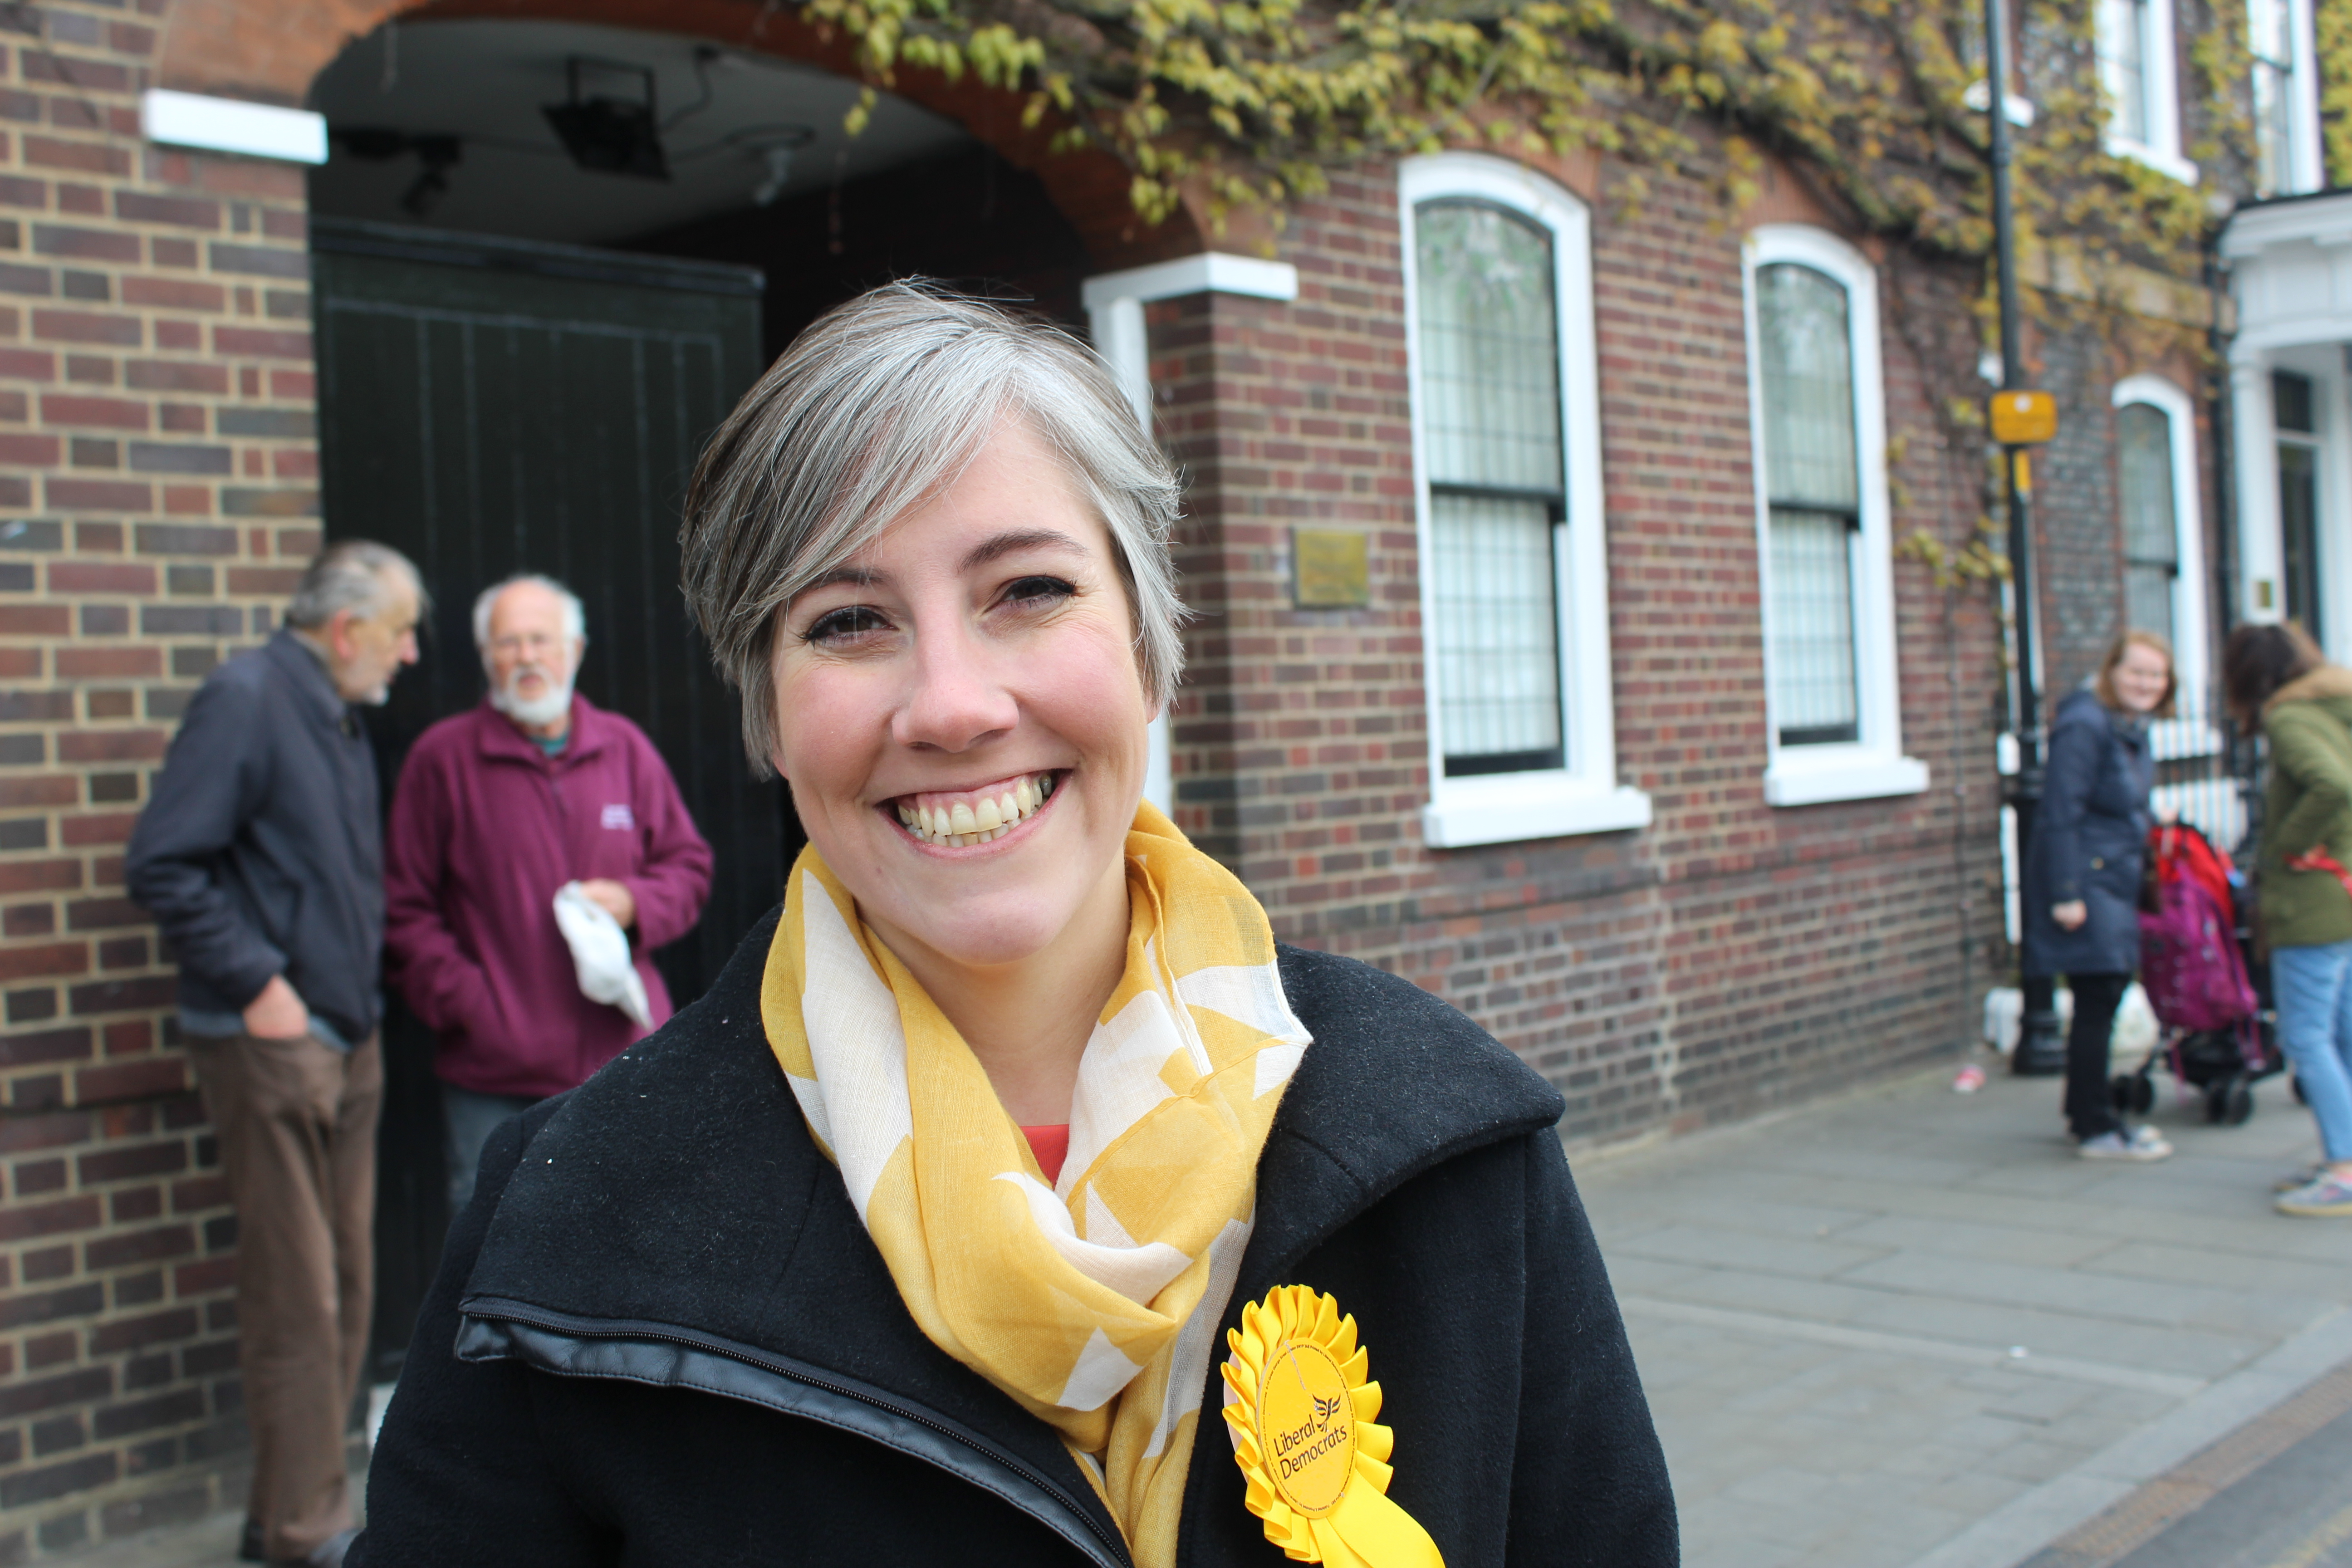 Image of Daisy Cooper smiling with background of a street on a sunny day